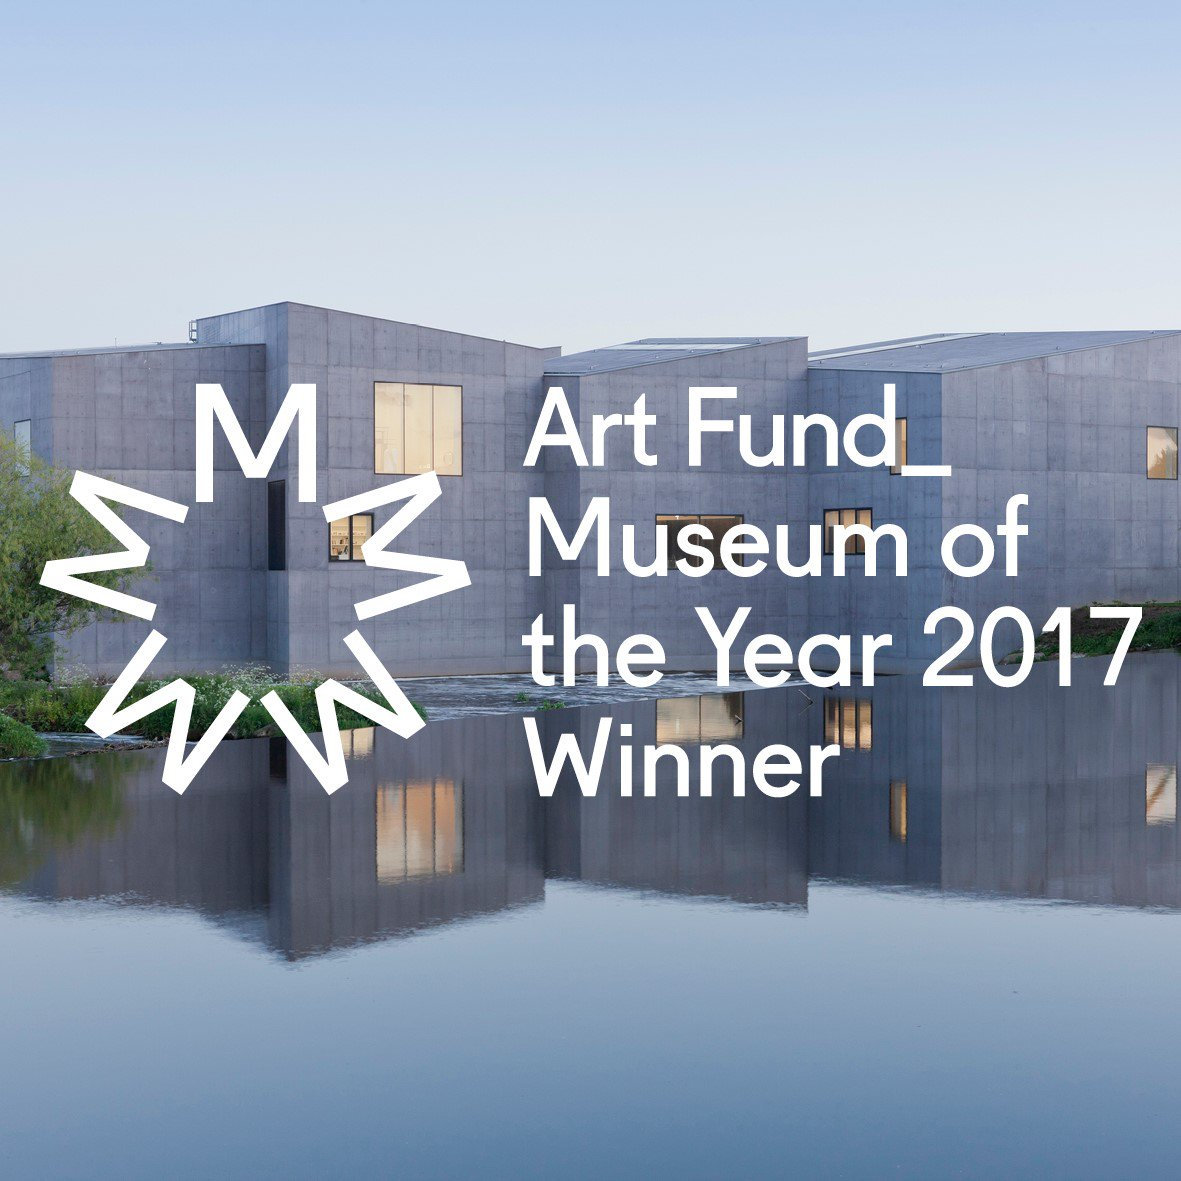 Super excited and proud to announce we are @ArtFund #MuseumOfTheYear 2017! https://t.co/shrXp2A19o